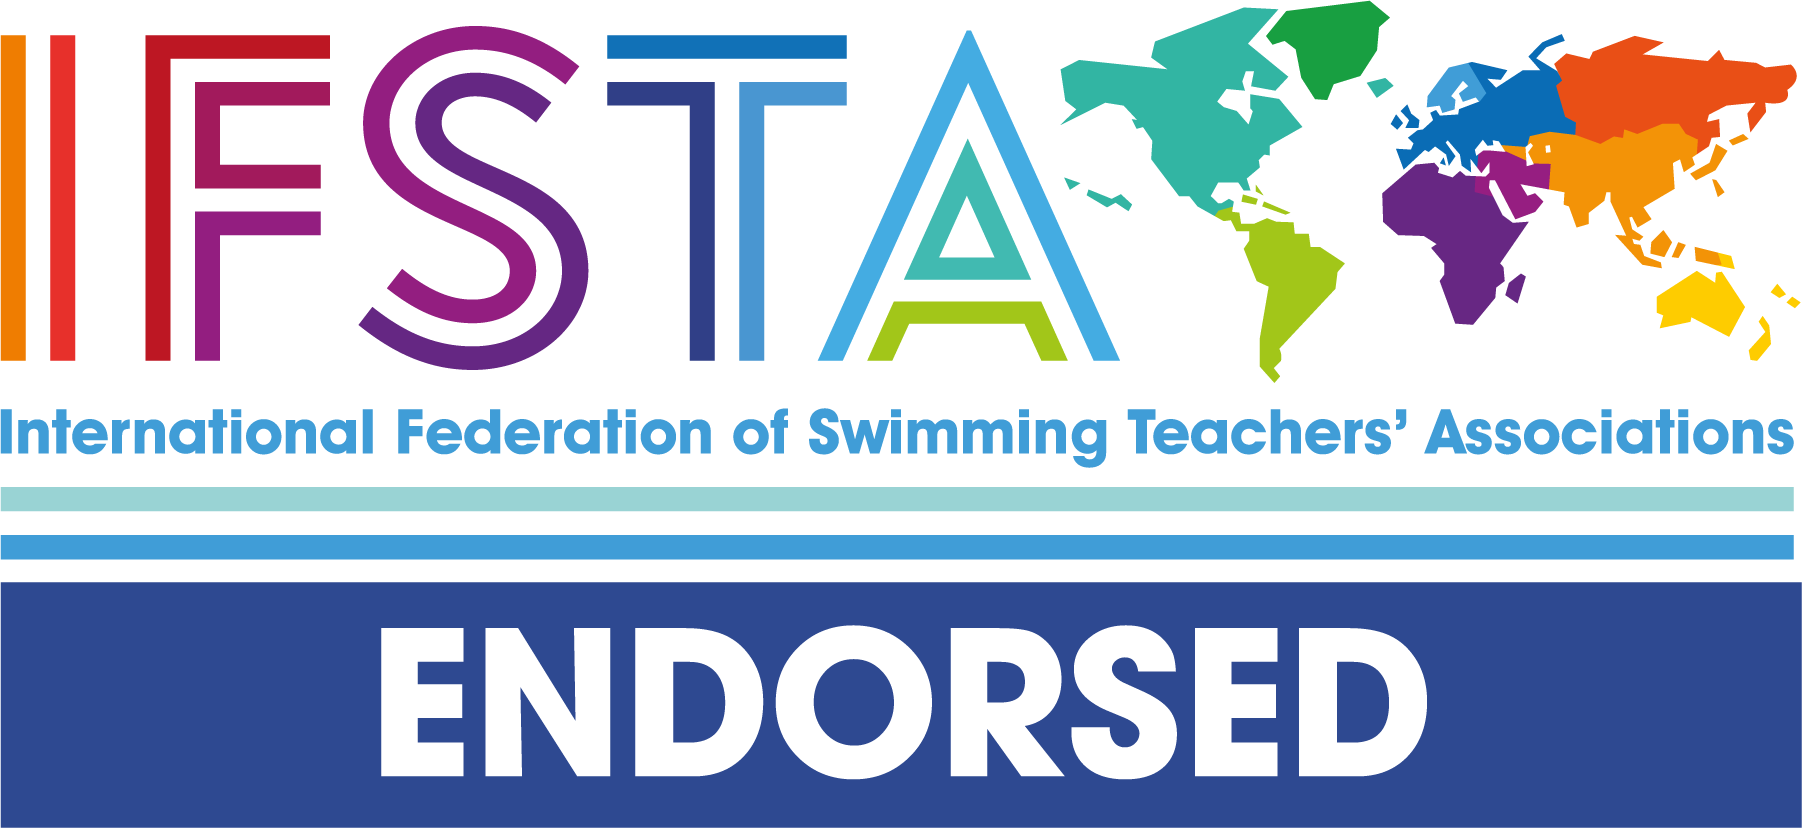 Ifsta endorsed logo